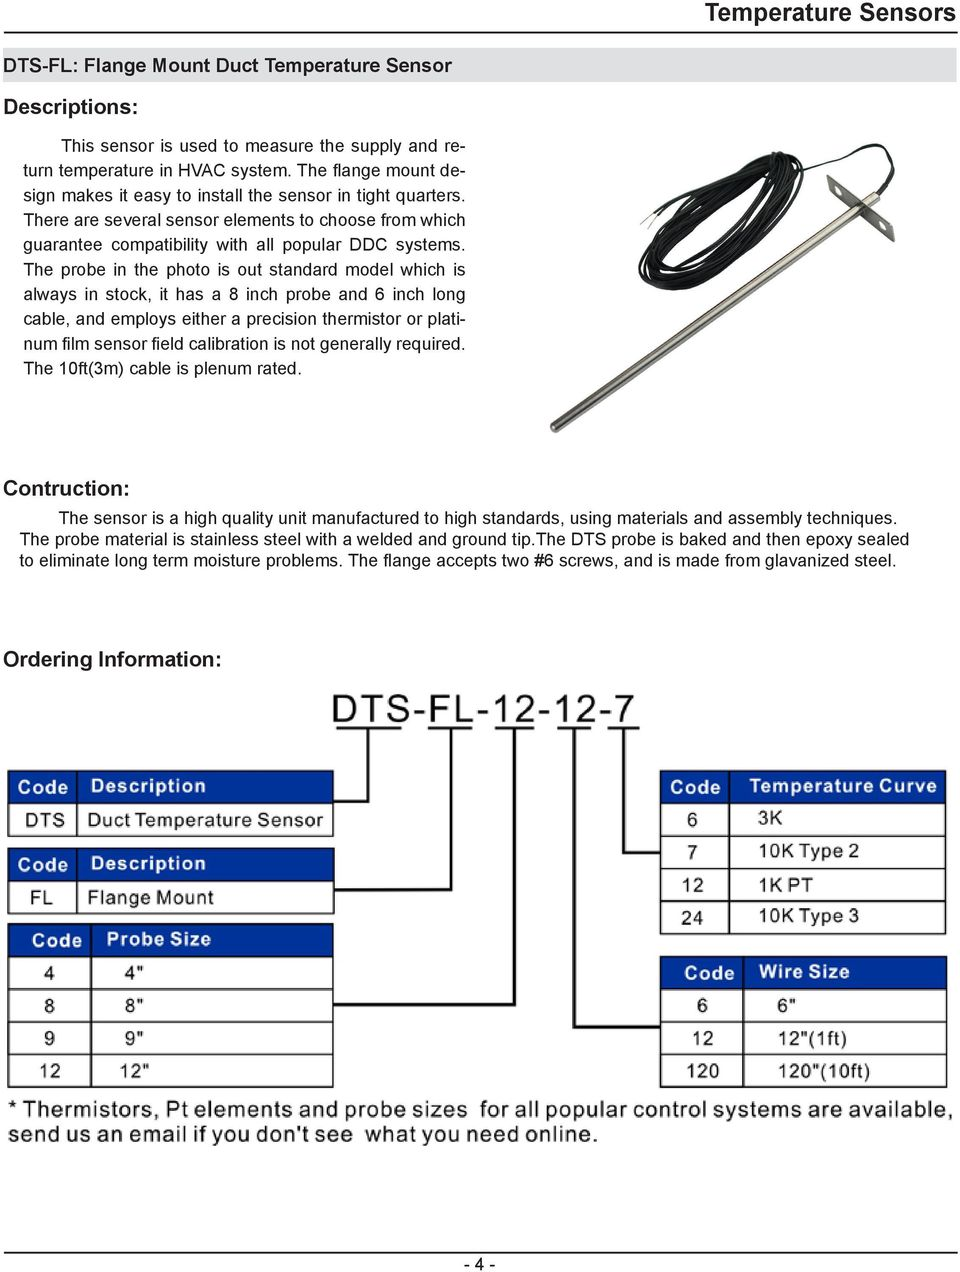 Temperature Sensors General Specification Description Pdf Water Sensor Circuit 420ma Pt100 Buy The Probe In Photo Is Out Standard Model Which Always Stock It 5 Oat Outside Air